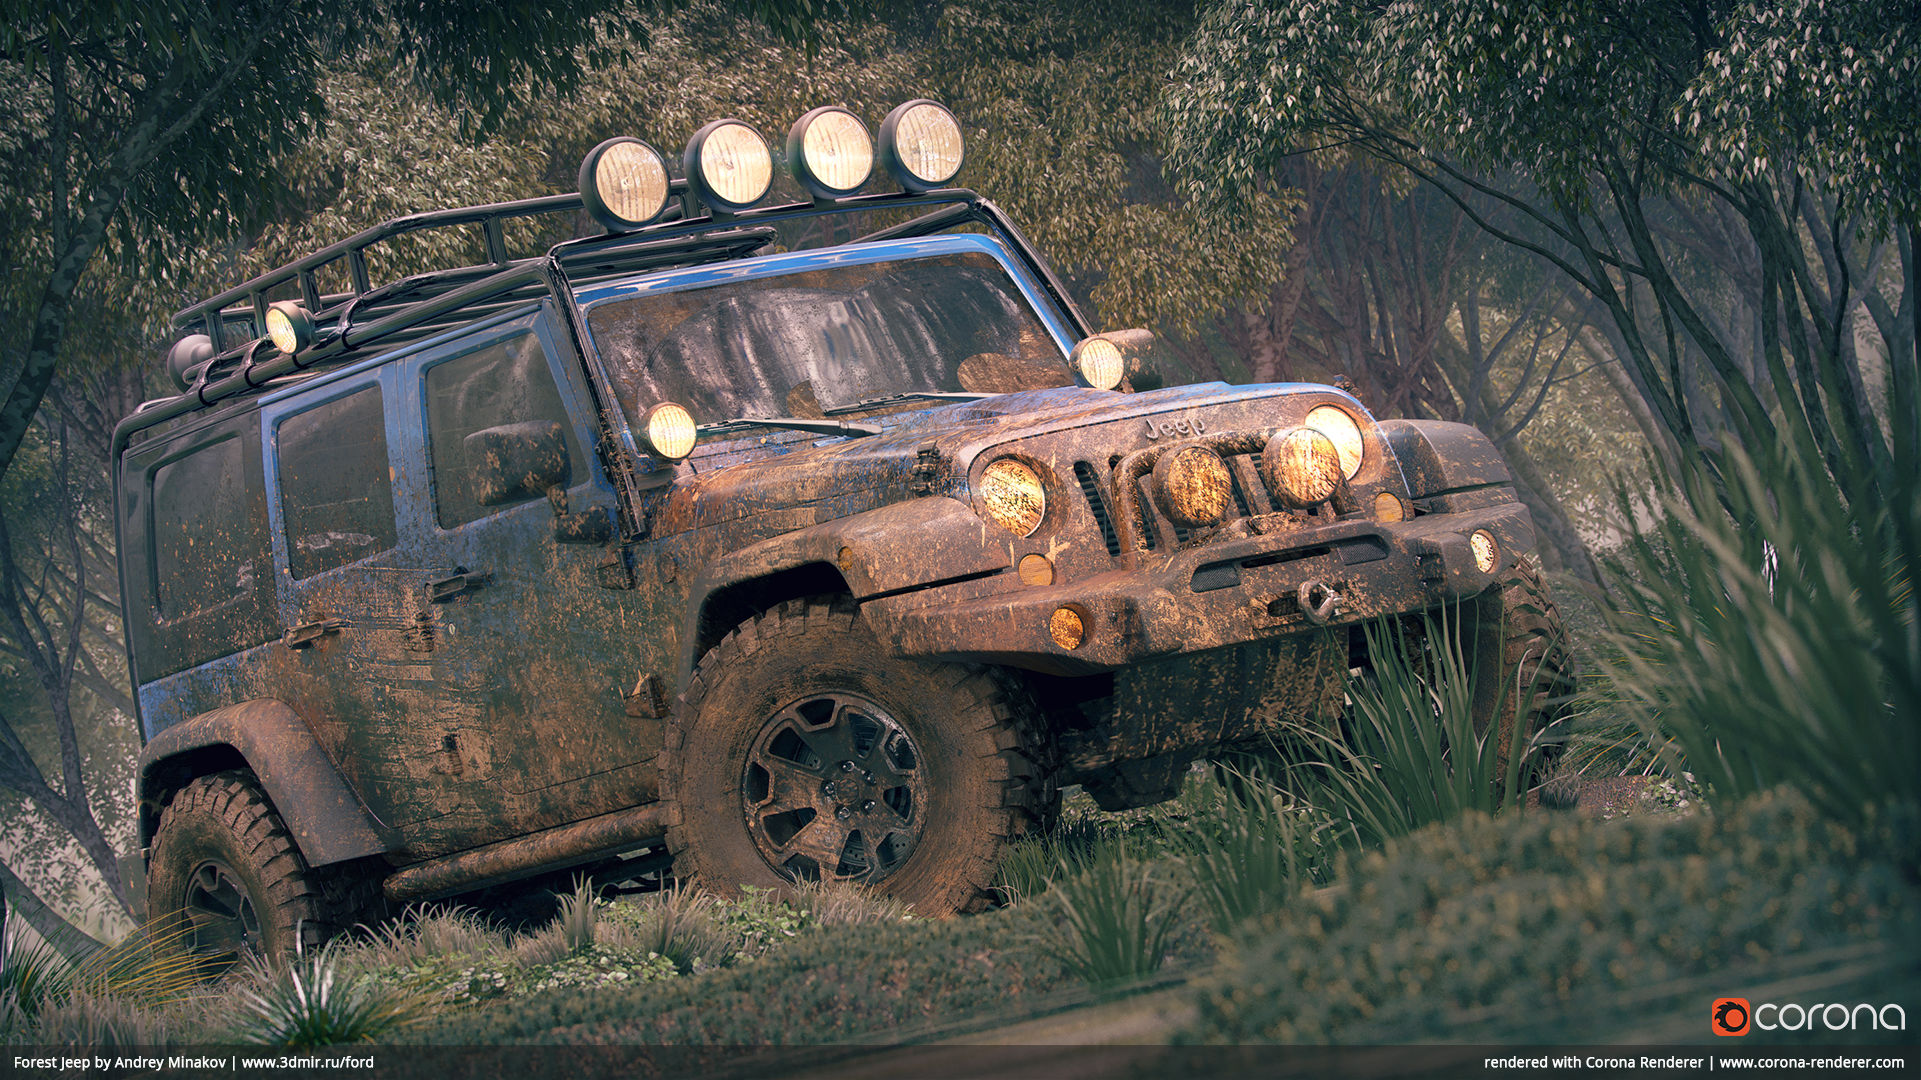 Forest Jeep by Andrey Minakov